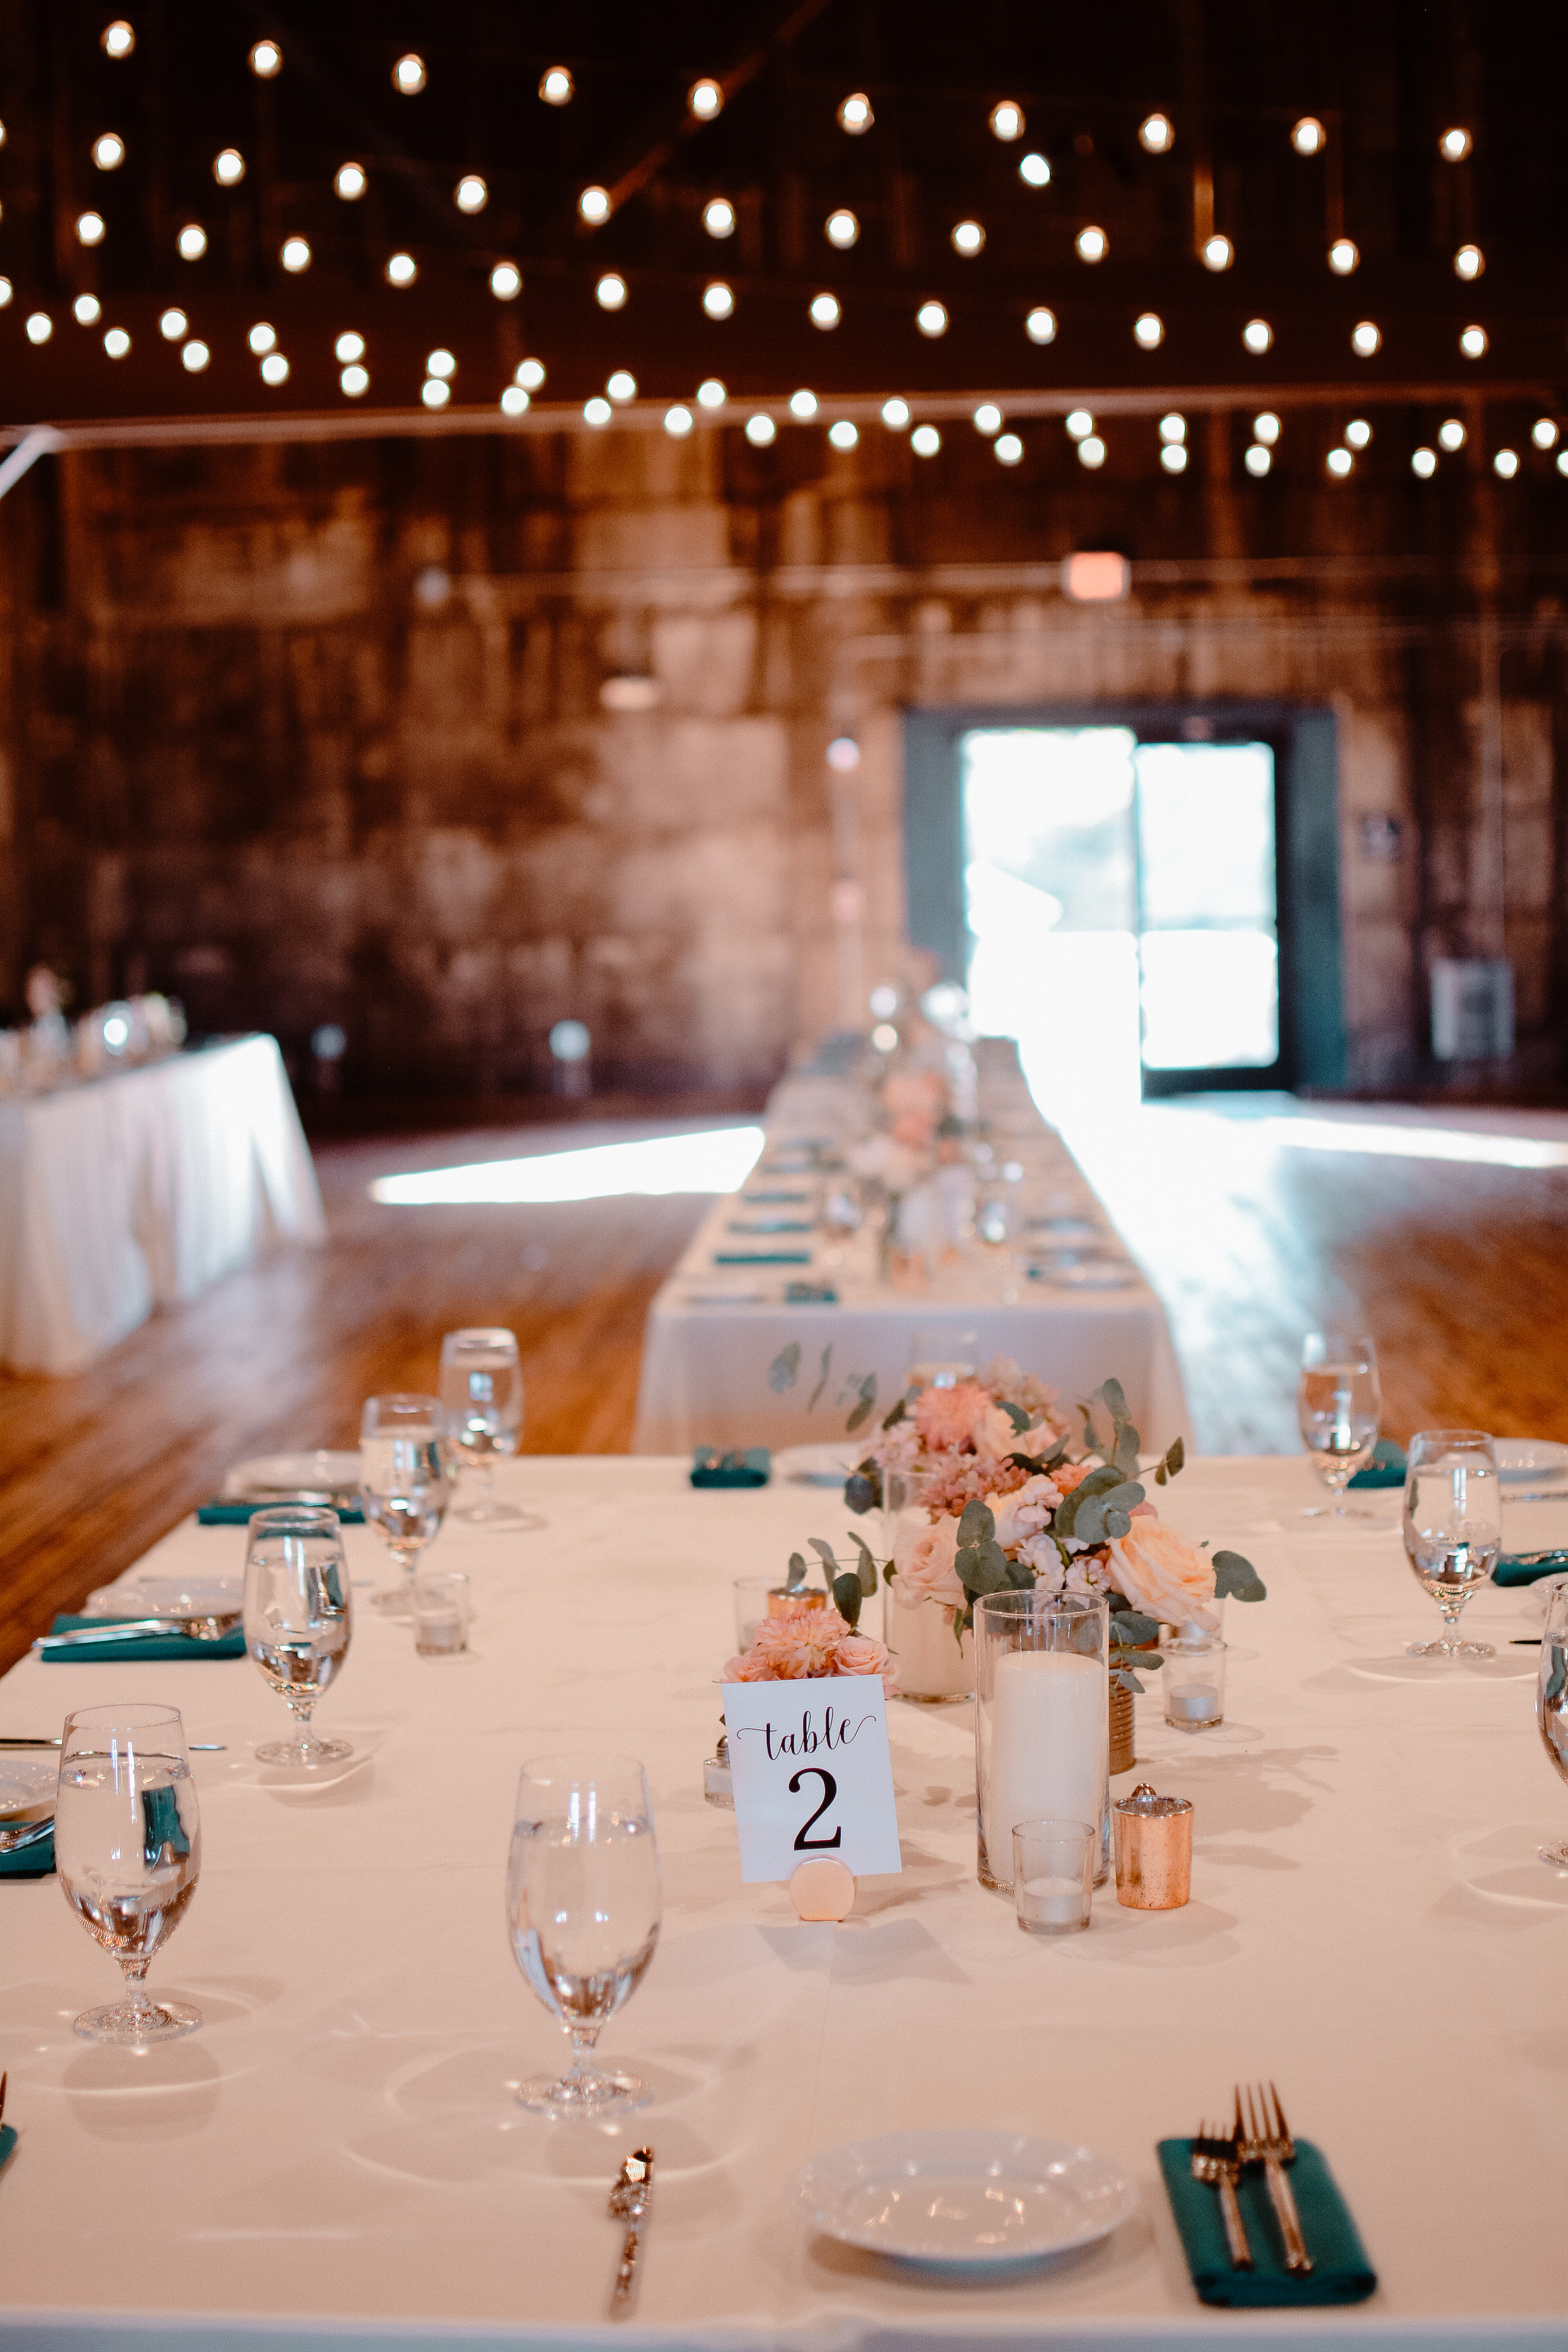 Fleur + Stitch, Fleur and Stitch, Fleur & Stitch, Nicole Hunt Photography, Olio Event Space, Wedding Flowers, Olio Wedding, Olio Event Space Florist, Olio Peabody Ceremony, Wedding Flowers, Peabody Wedding Florist, Topsfield Wedding Flowers